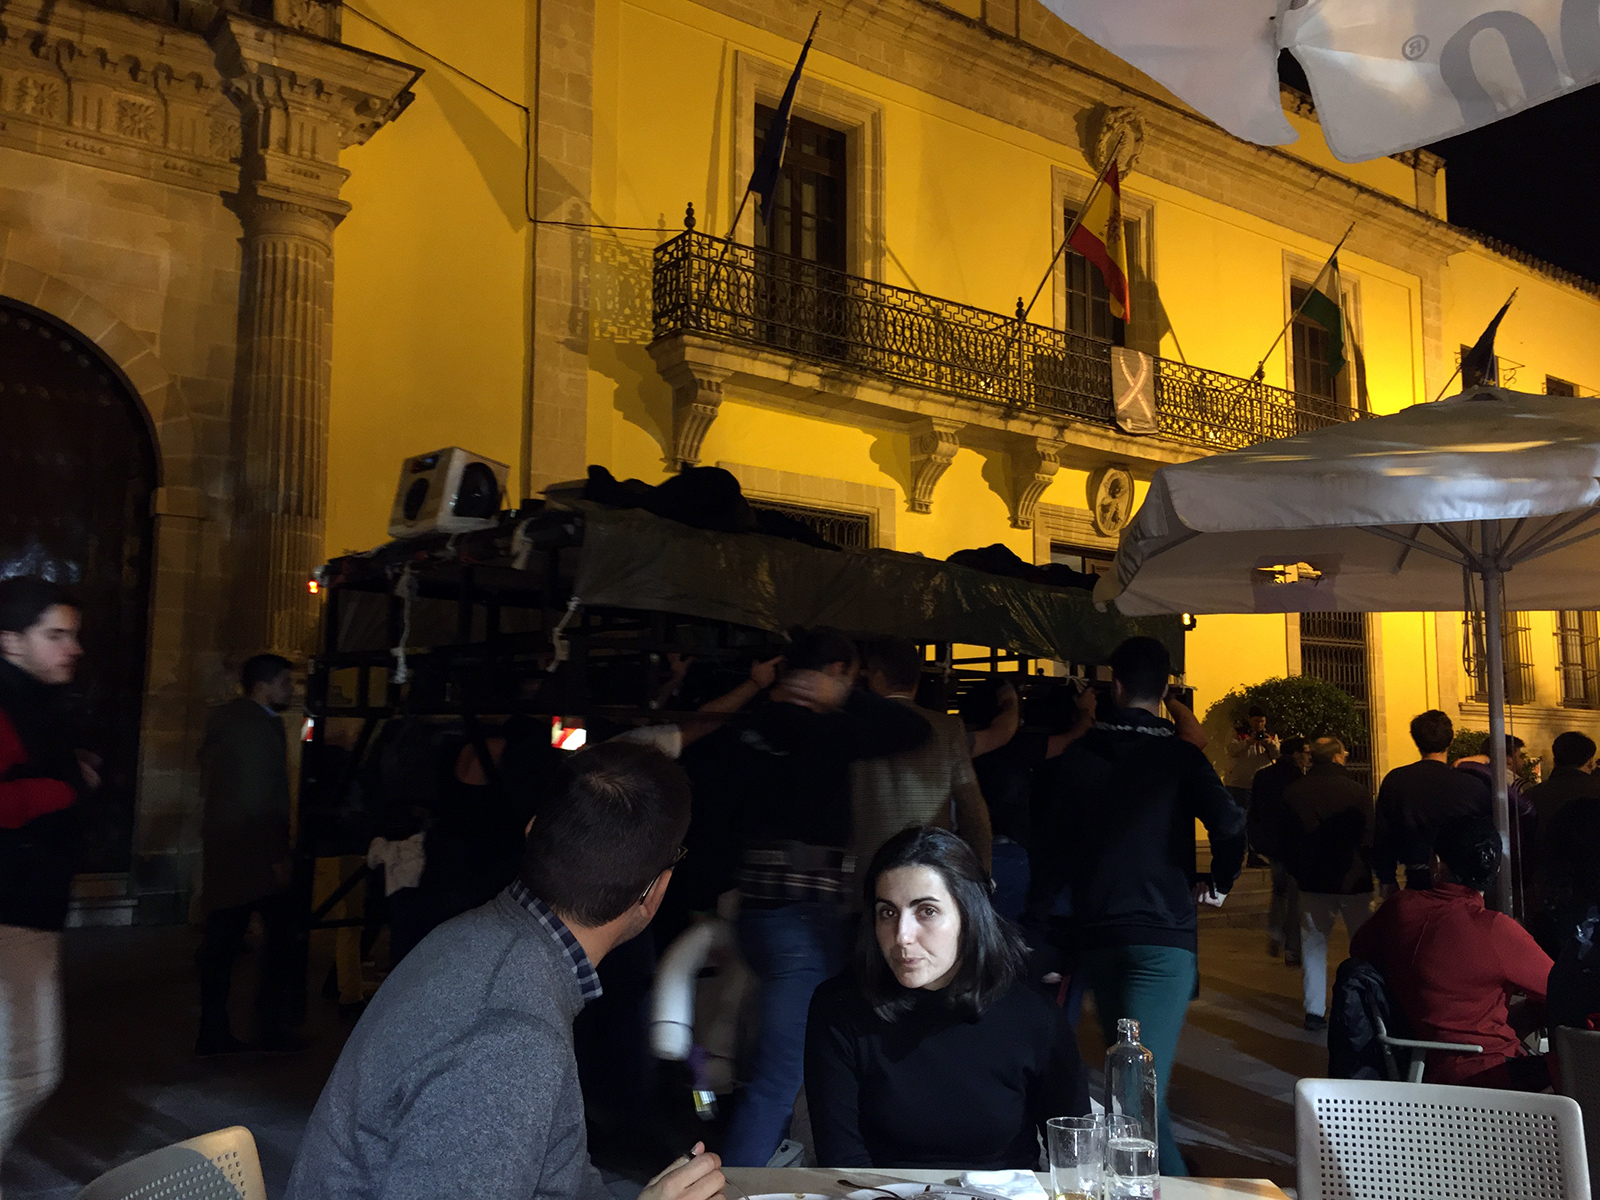 Restaurante Albores in Jerez de la Frontera, Spain by Jets Like Taxis